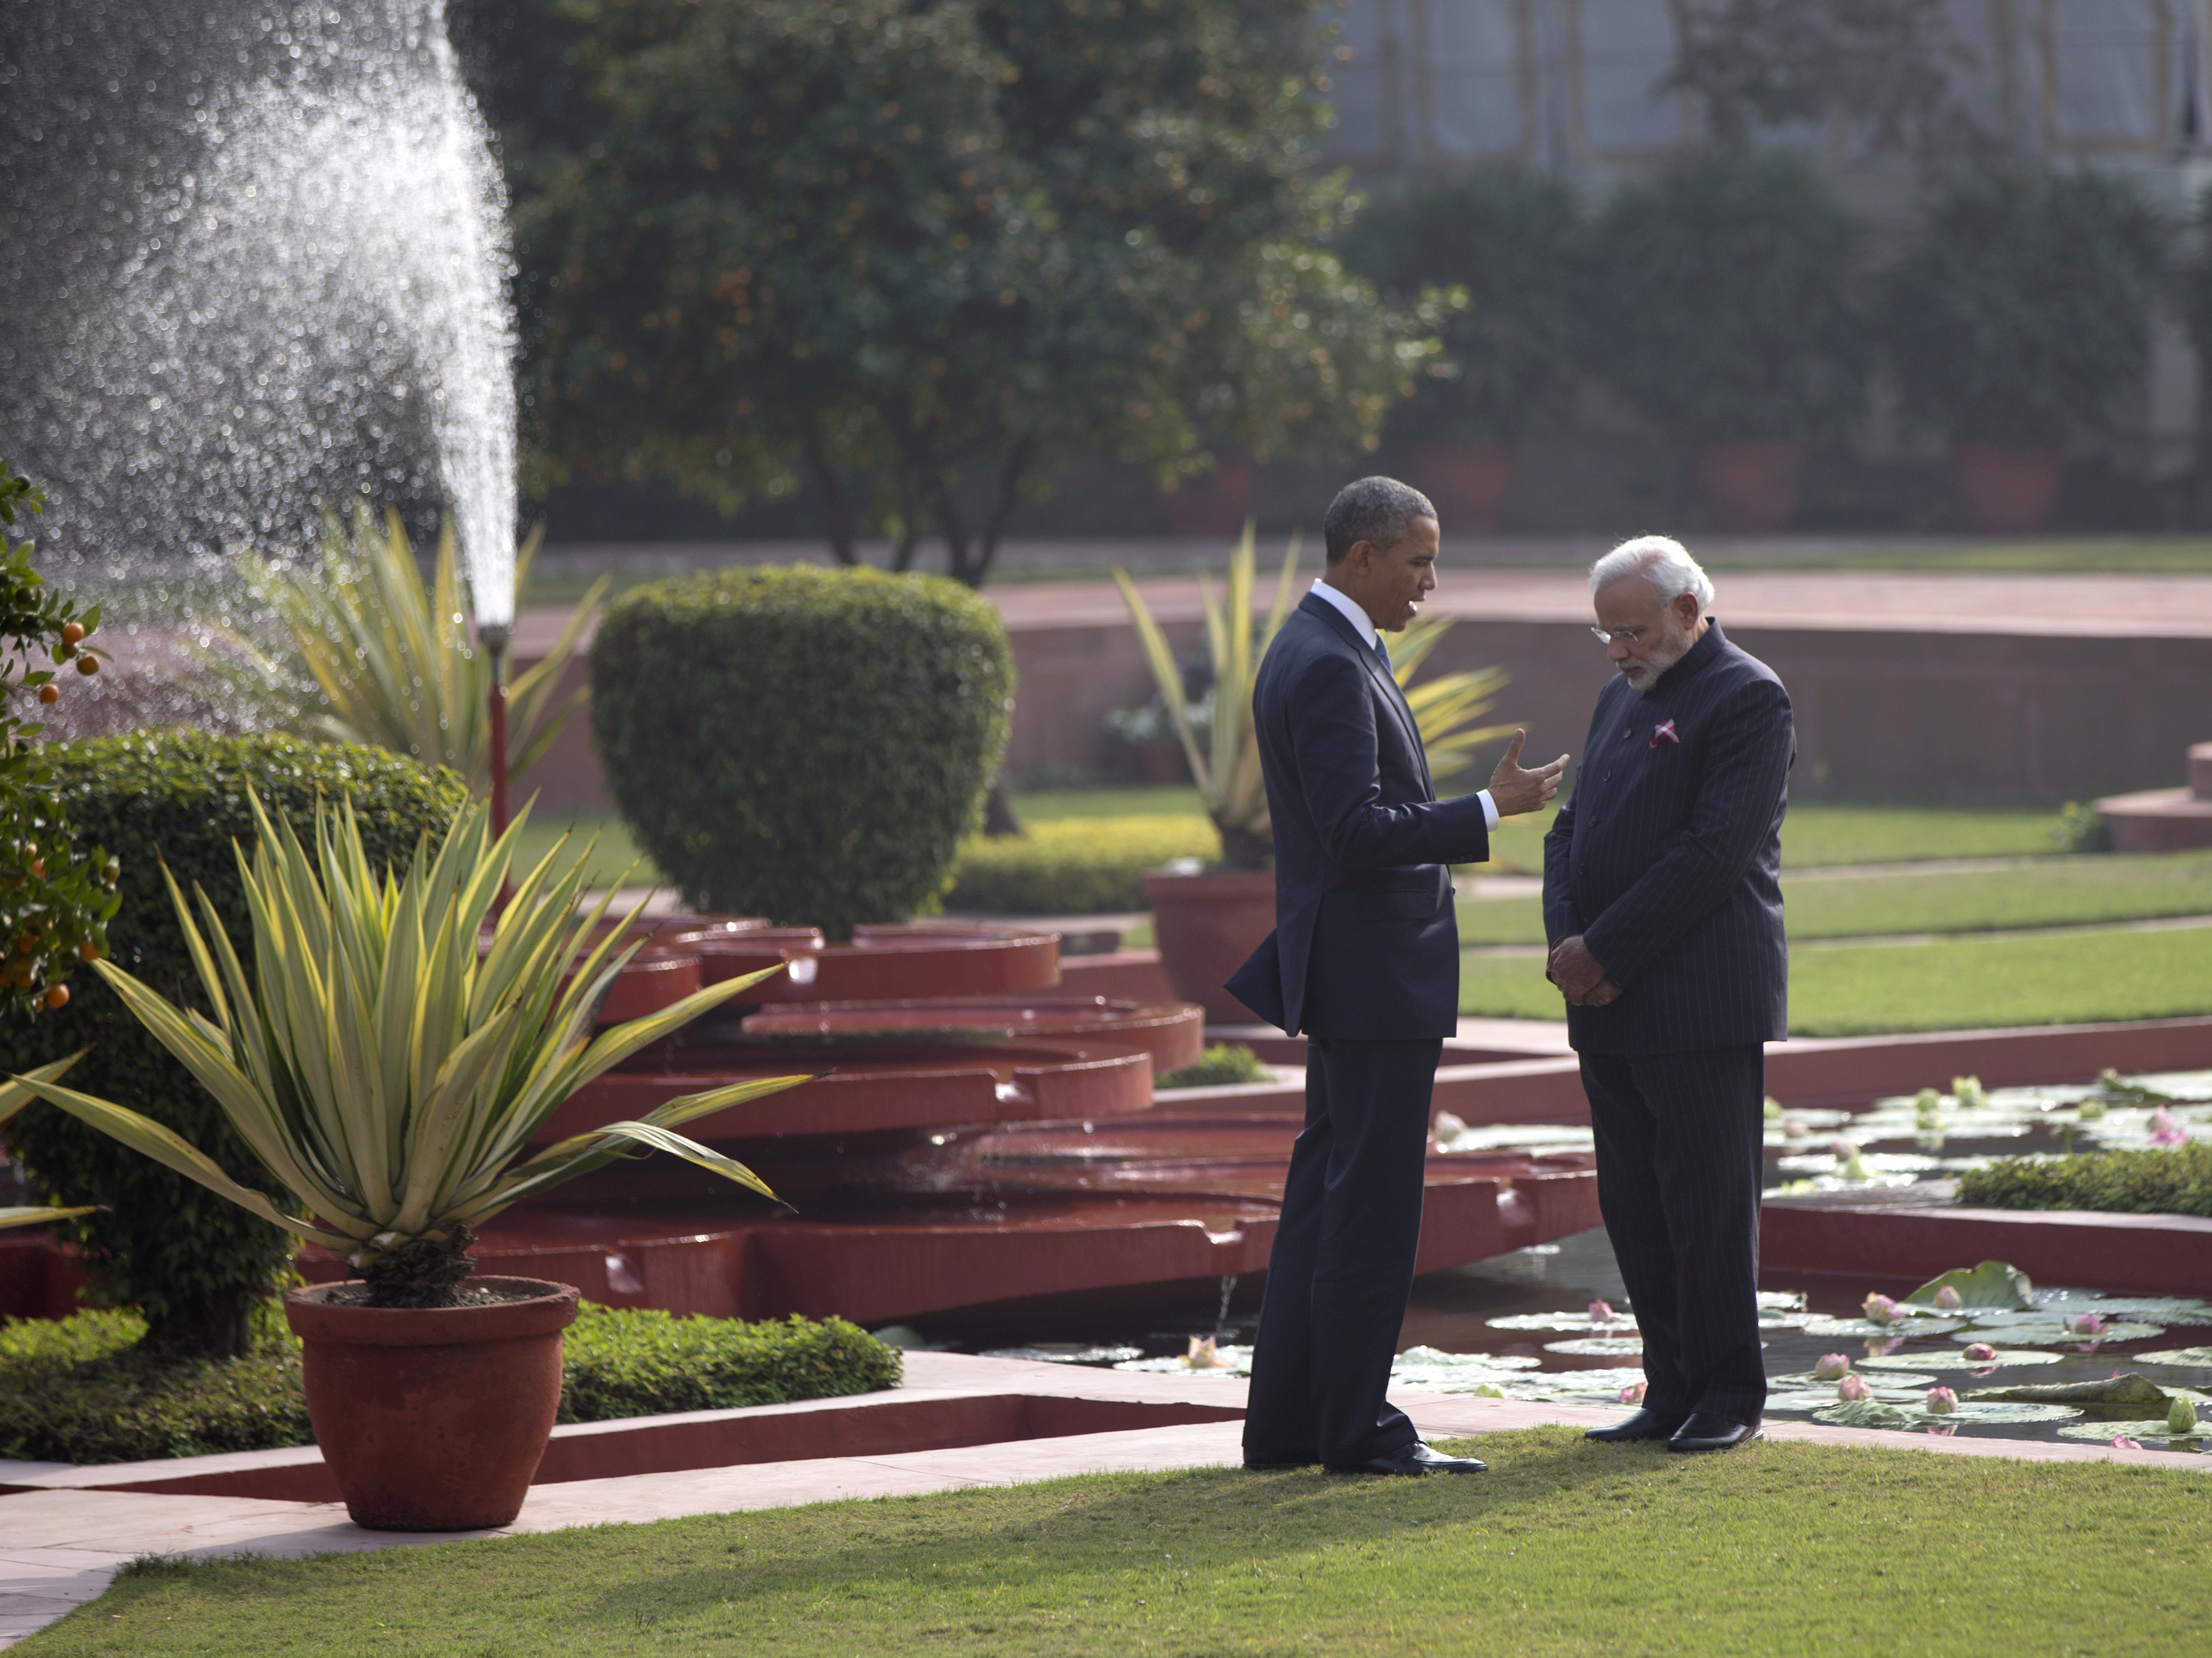 Pakistanis View Obama's India Visit With A Touch Of Irritation